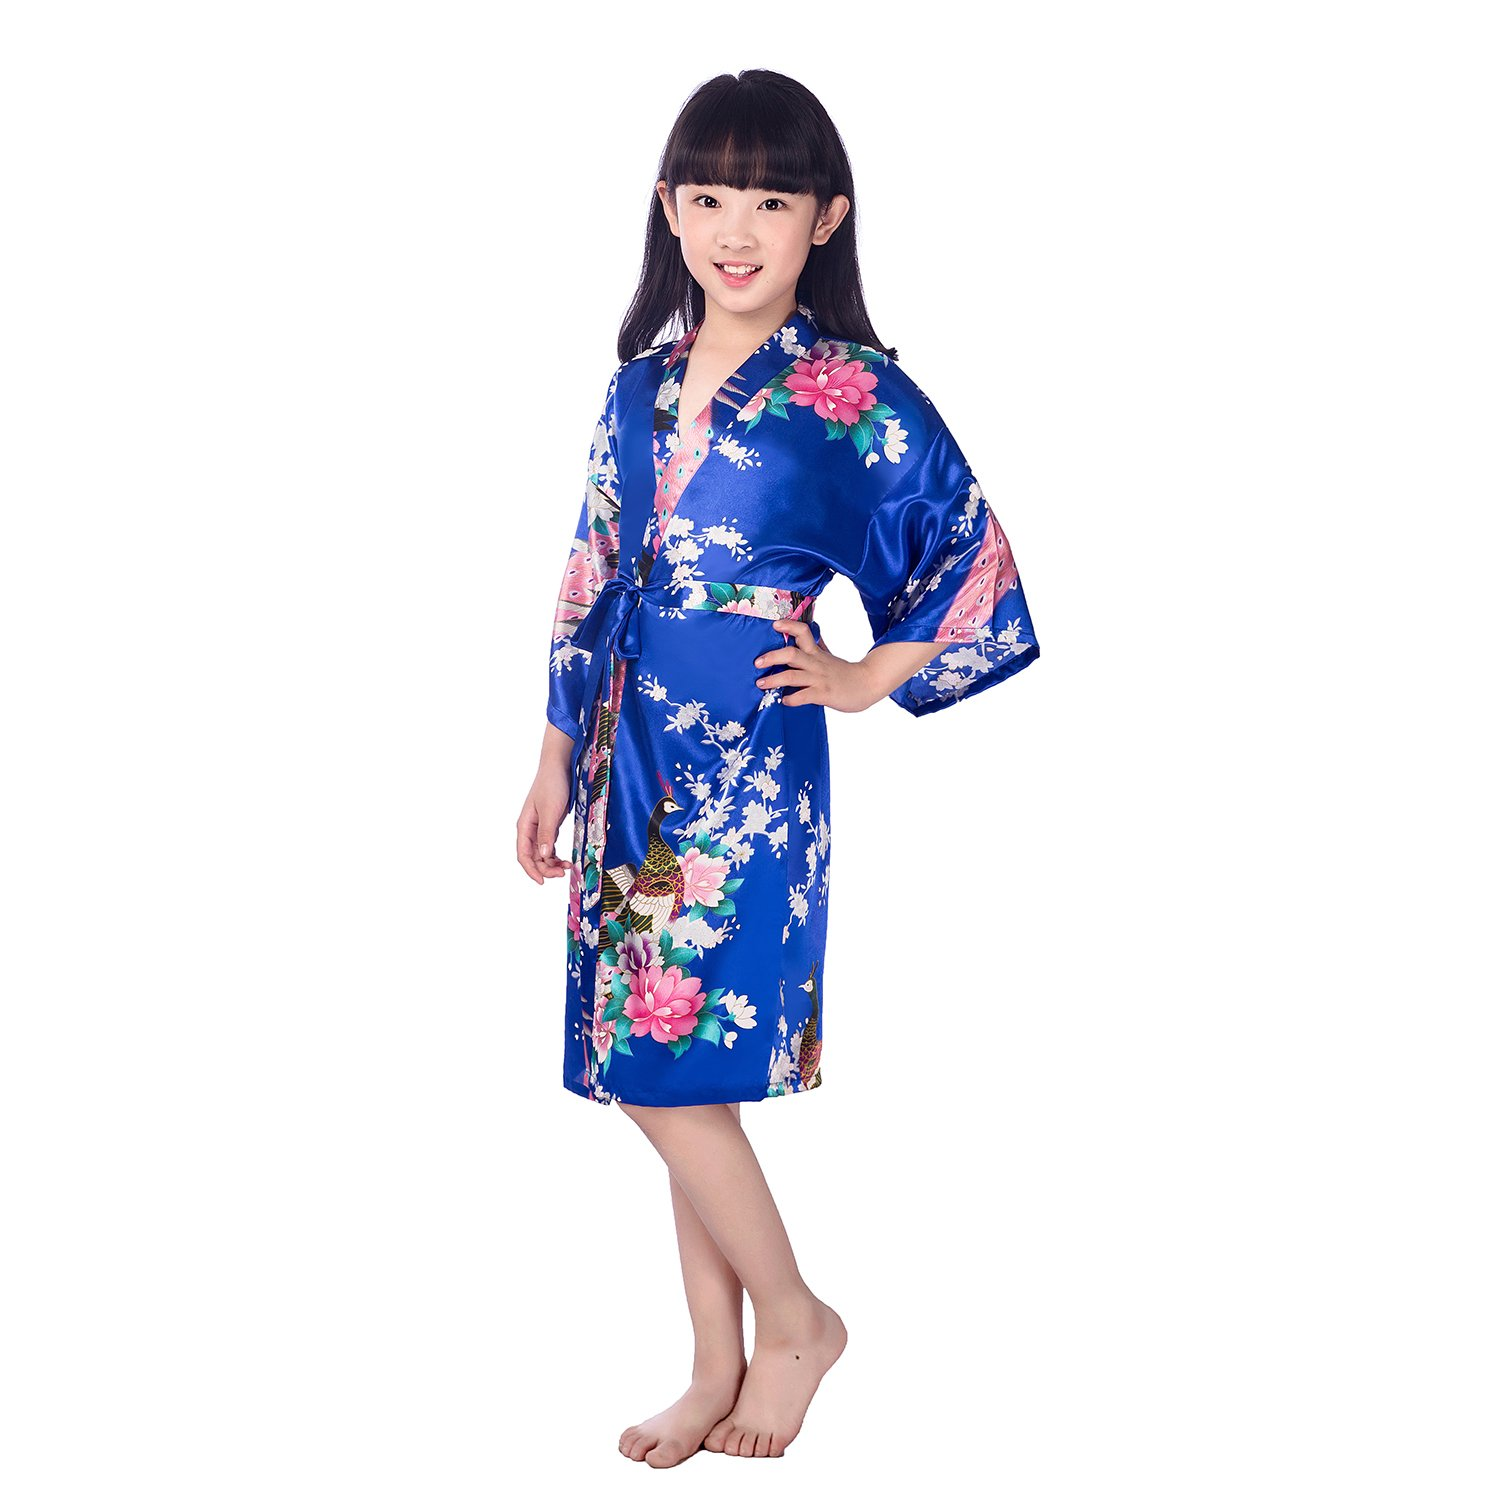 Amazon.com  Child s Satin Kimono Robes for Girls Sleepwear Peacock Flower  Robe for Spa Wedding Birthday Gift  Clothing 07fe95a12